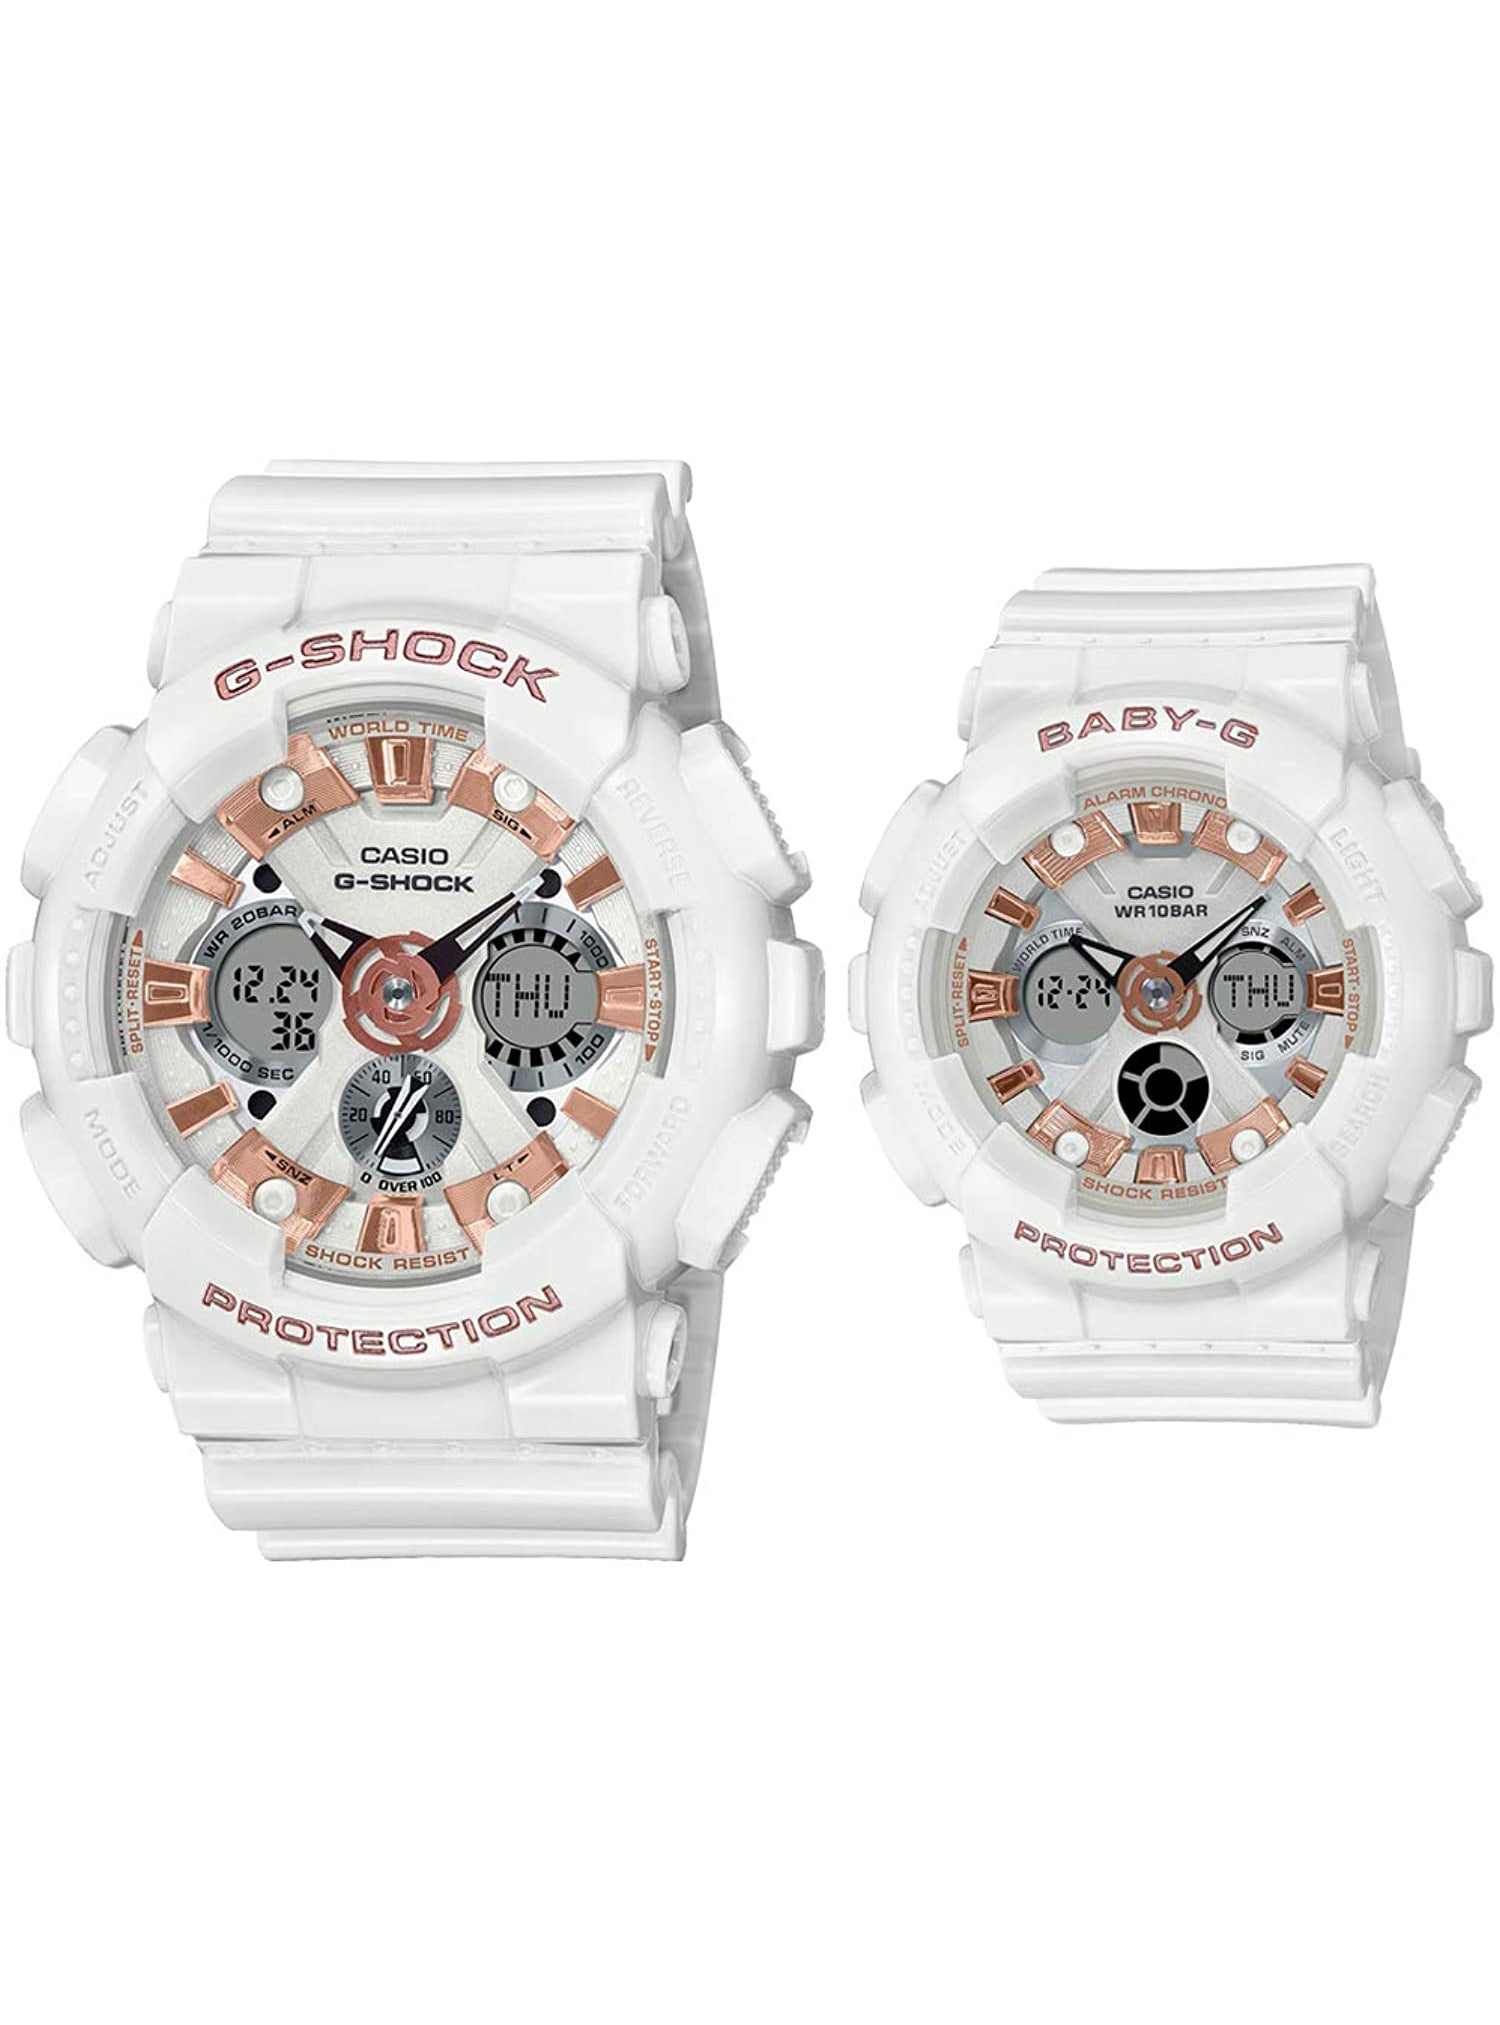 CASIO G-SHOCK/BABY-G LOVER'S COLLECTION 2020 LOV-20A-7AJR JDM